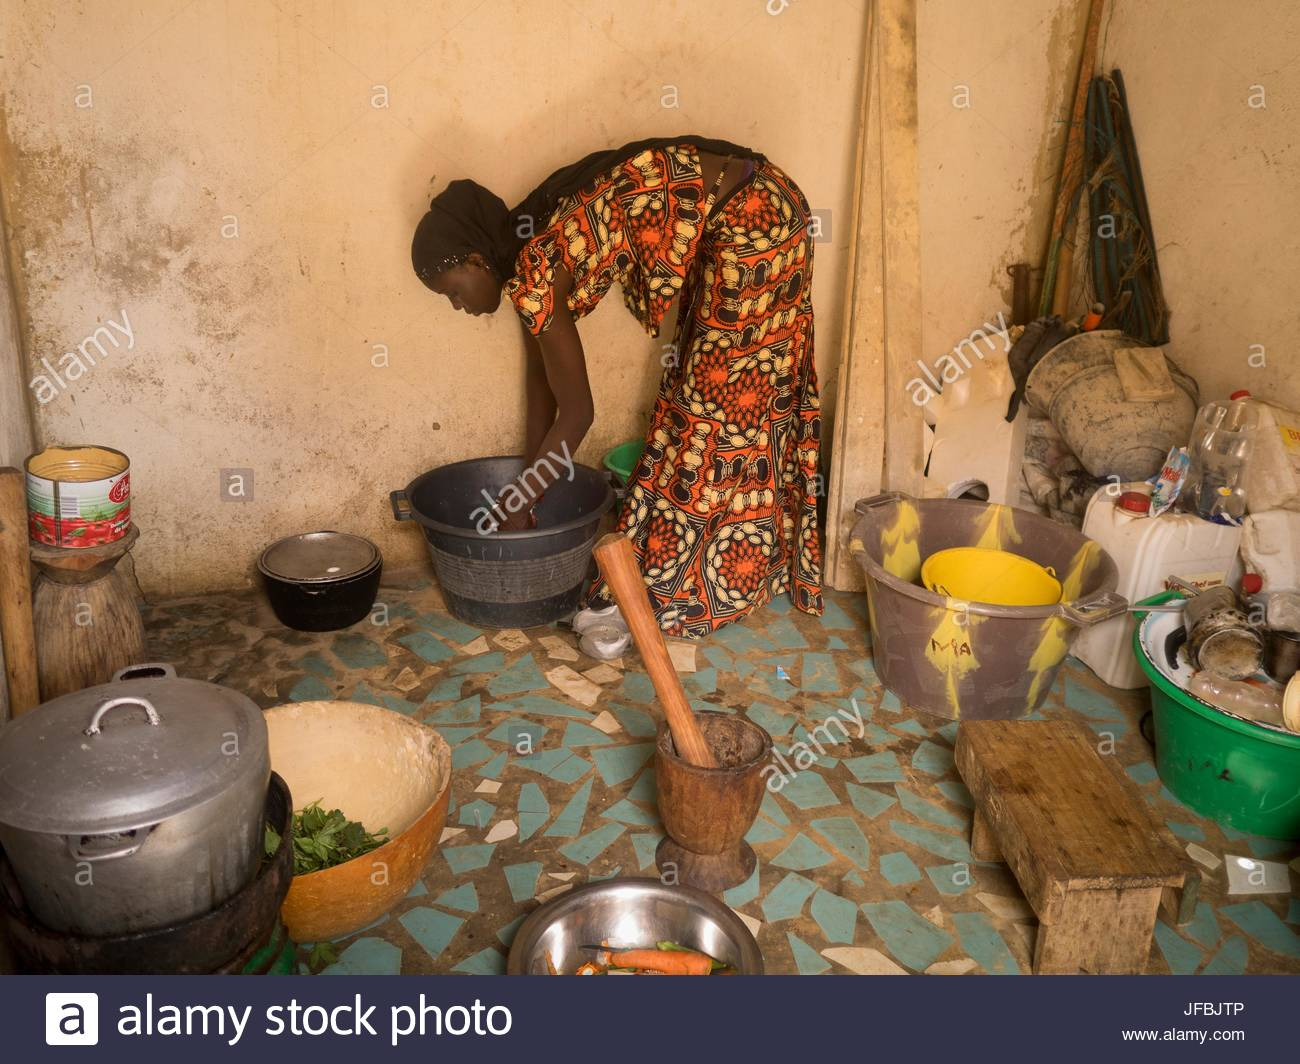 A 15 year old girl cooking for her family. - Stock Image